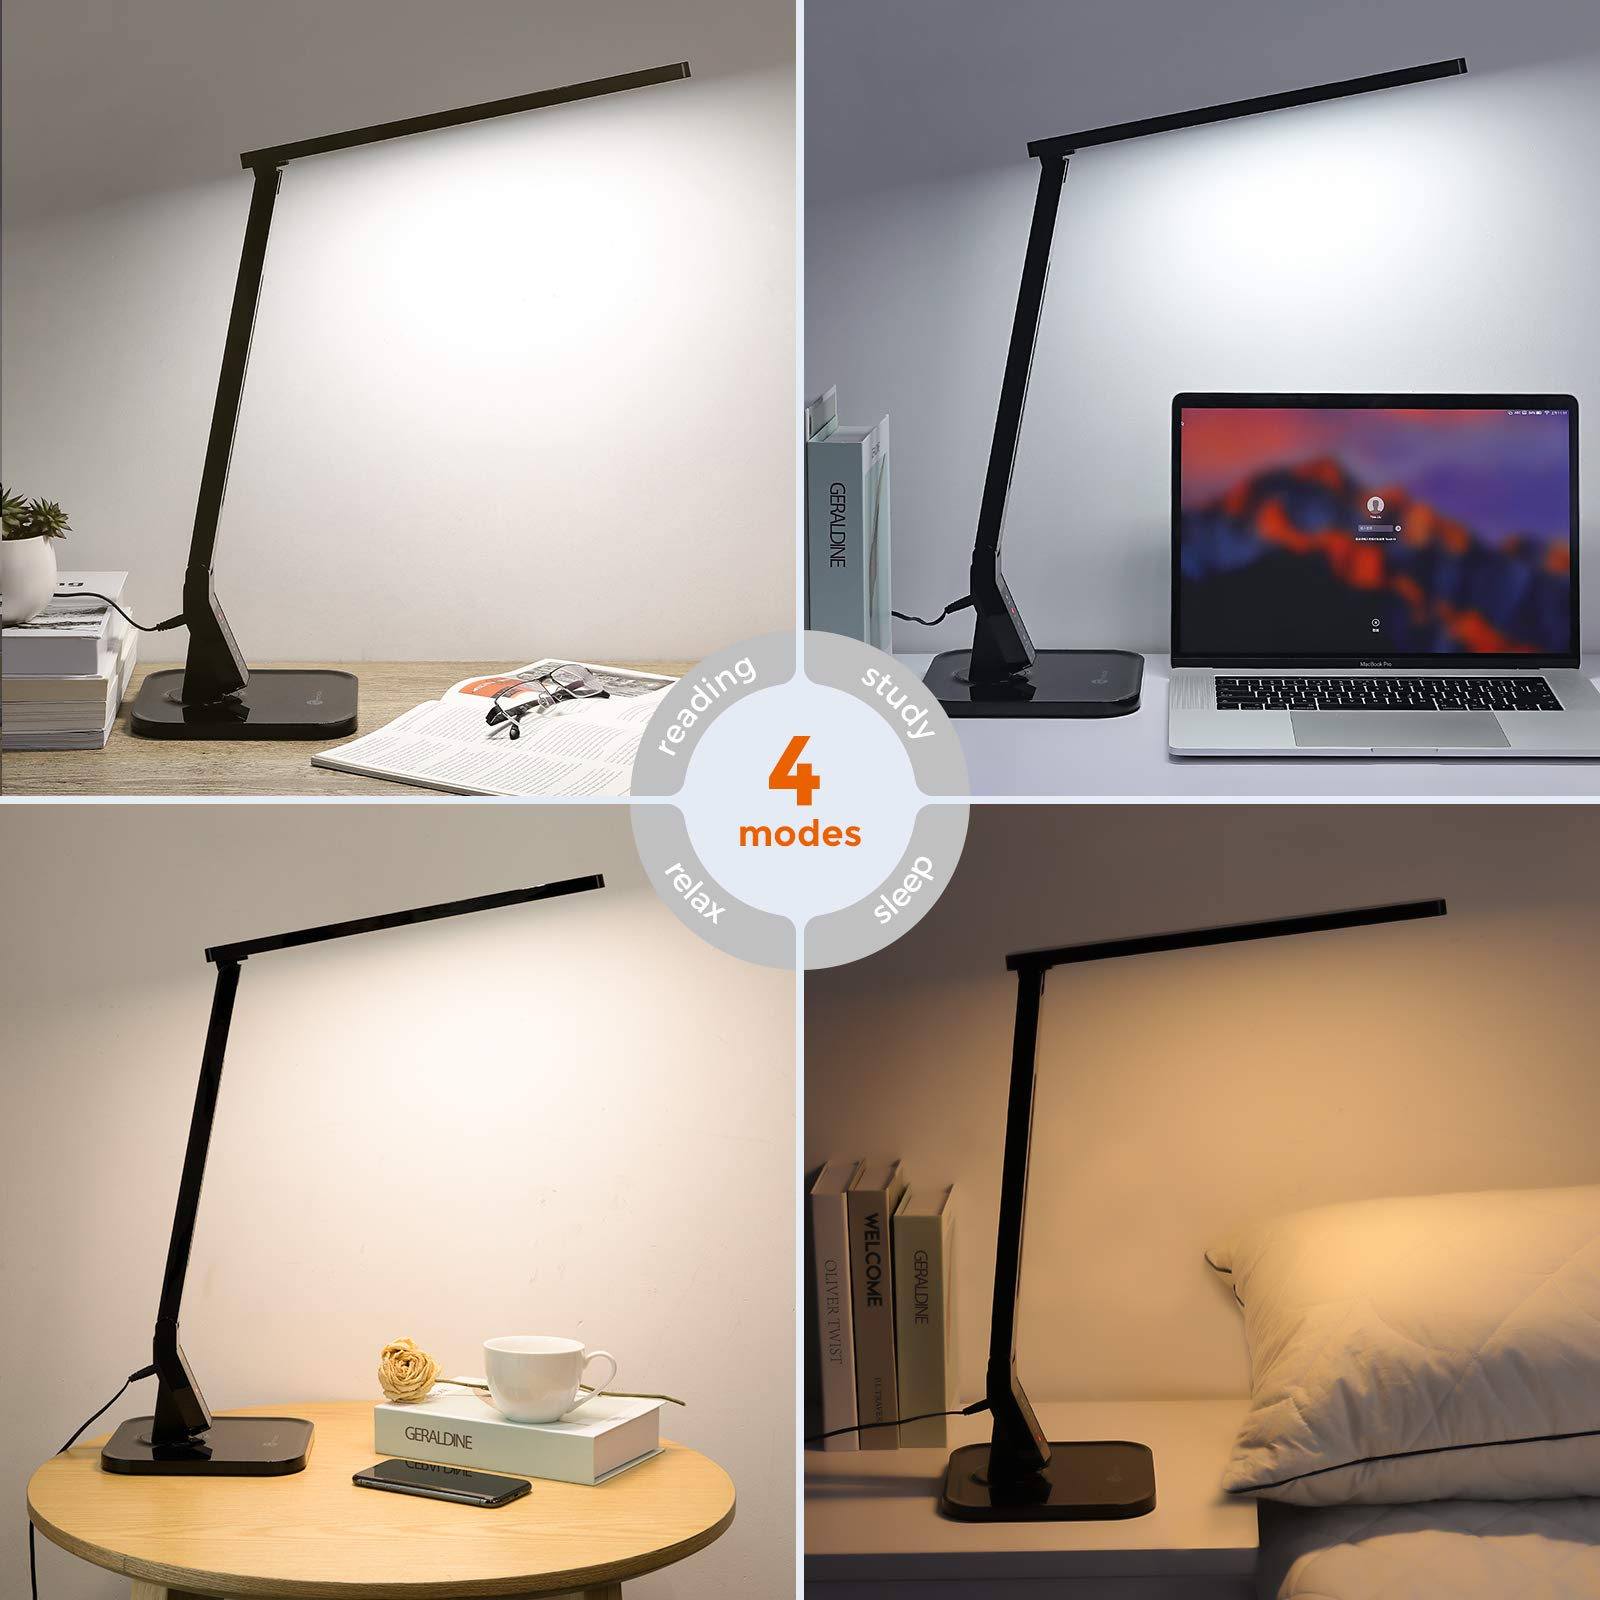 TaoTronics LED Desk Lamp with USB Charging Port, 4 Lighting Modes with 5 Brightness Levels, 1h Timer, Touch Control, Memory Function, Black, 14W, Official Member of Philips EnabLED Licensing Program by TaoTronics (Image #6)